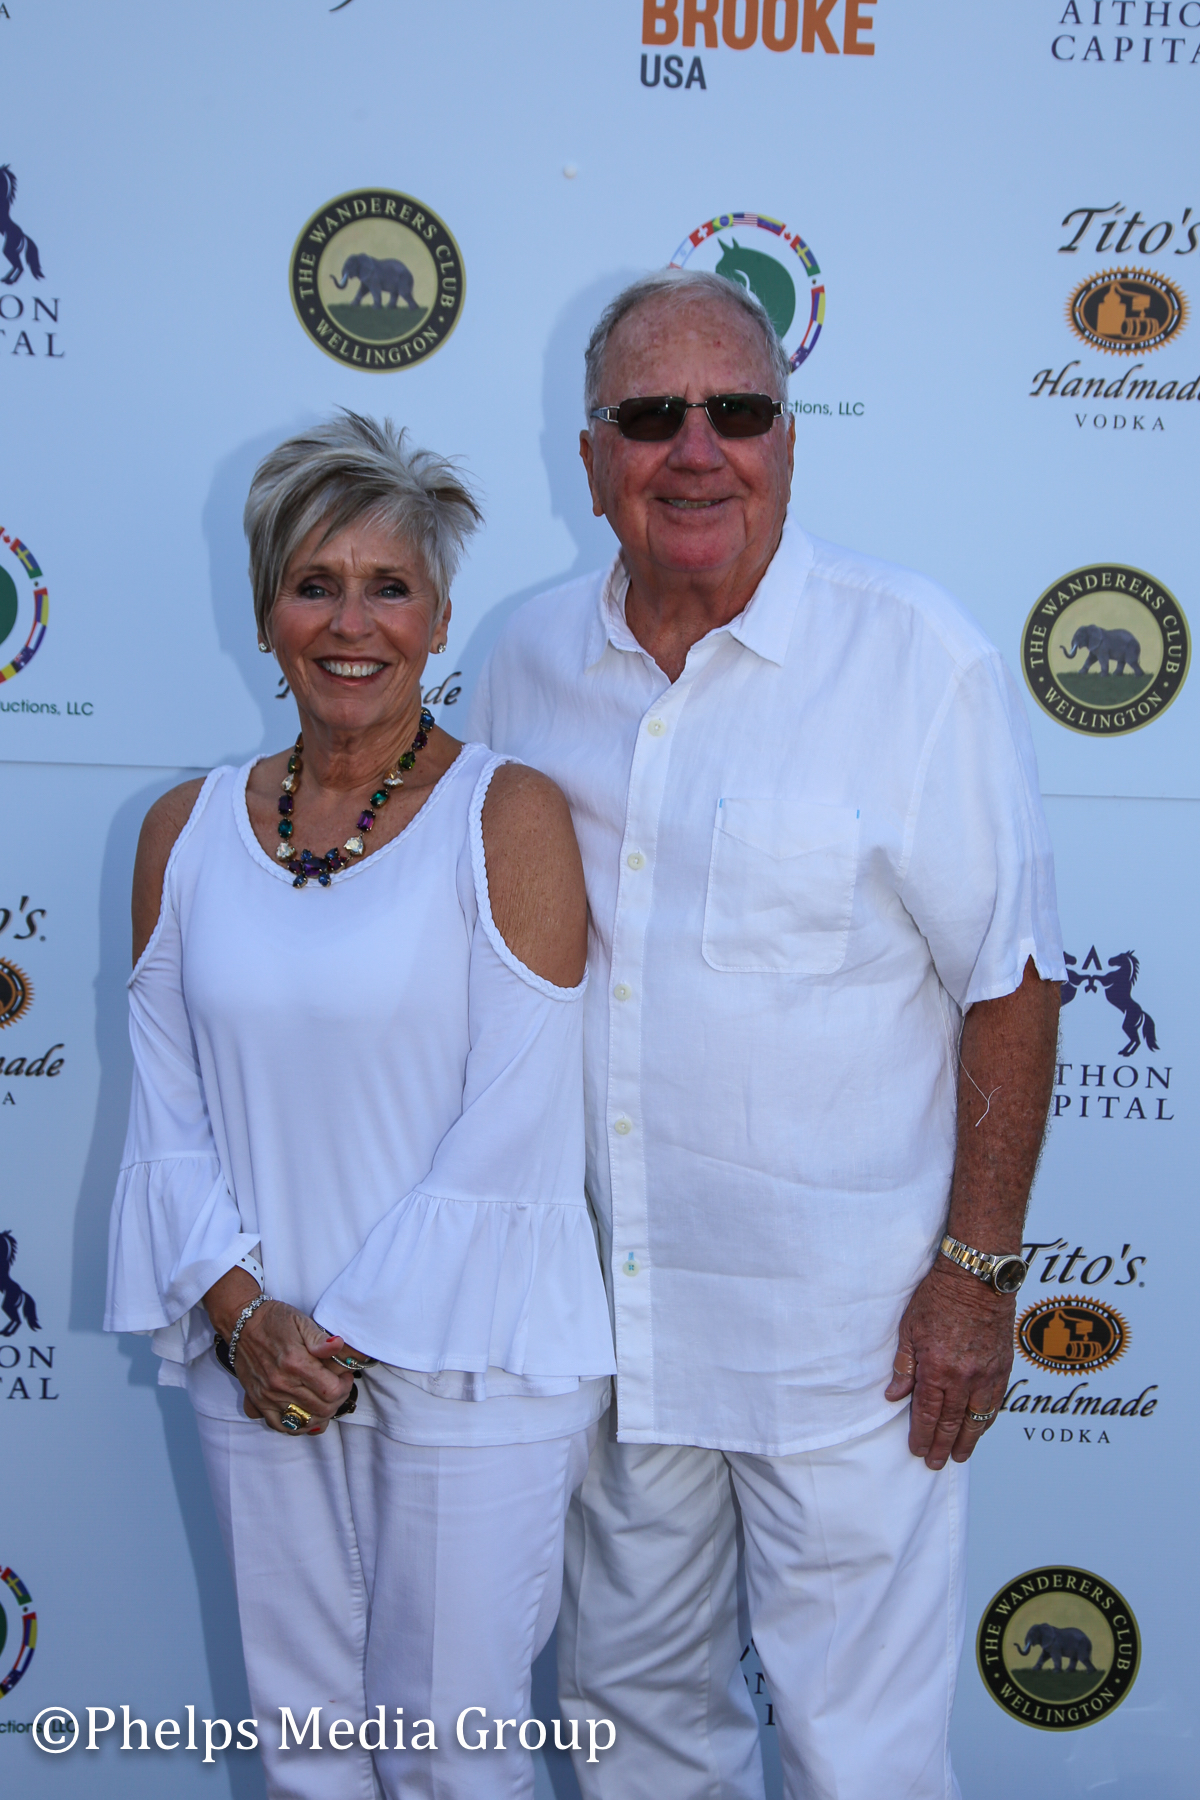 George Madden and Mary-Jane; Nic Roldan's 2nd Annual Sunset Polo & White Party, FL, by Phelps Media.jpg